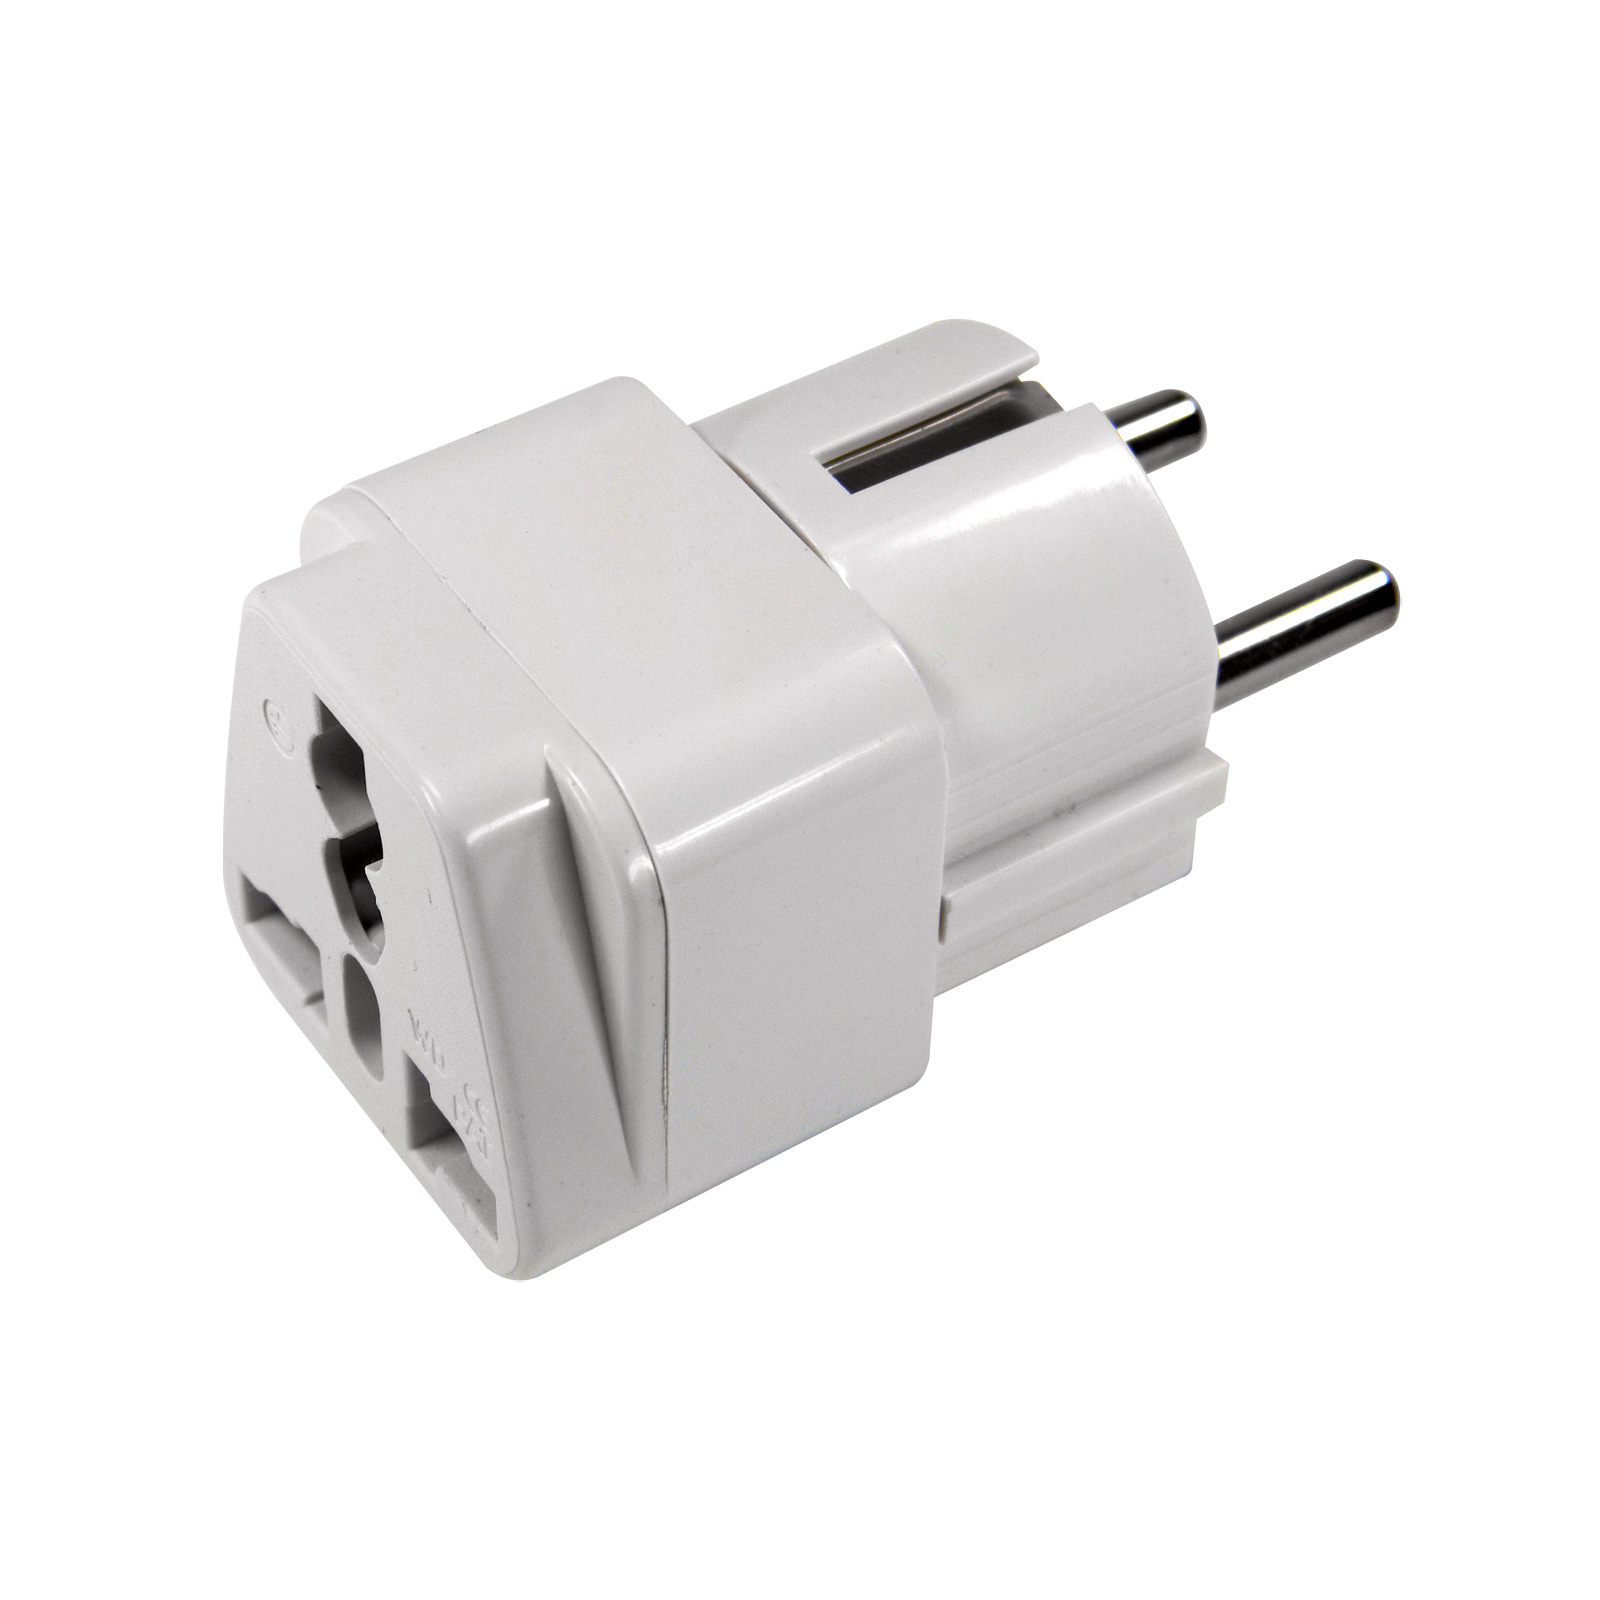 EAXUS universal travel plug adapter white EU stand